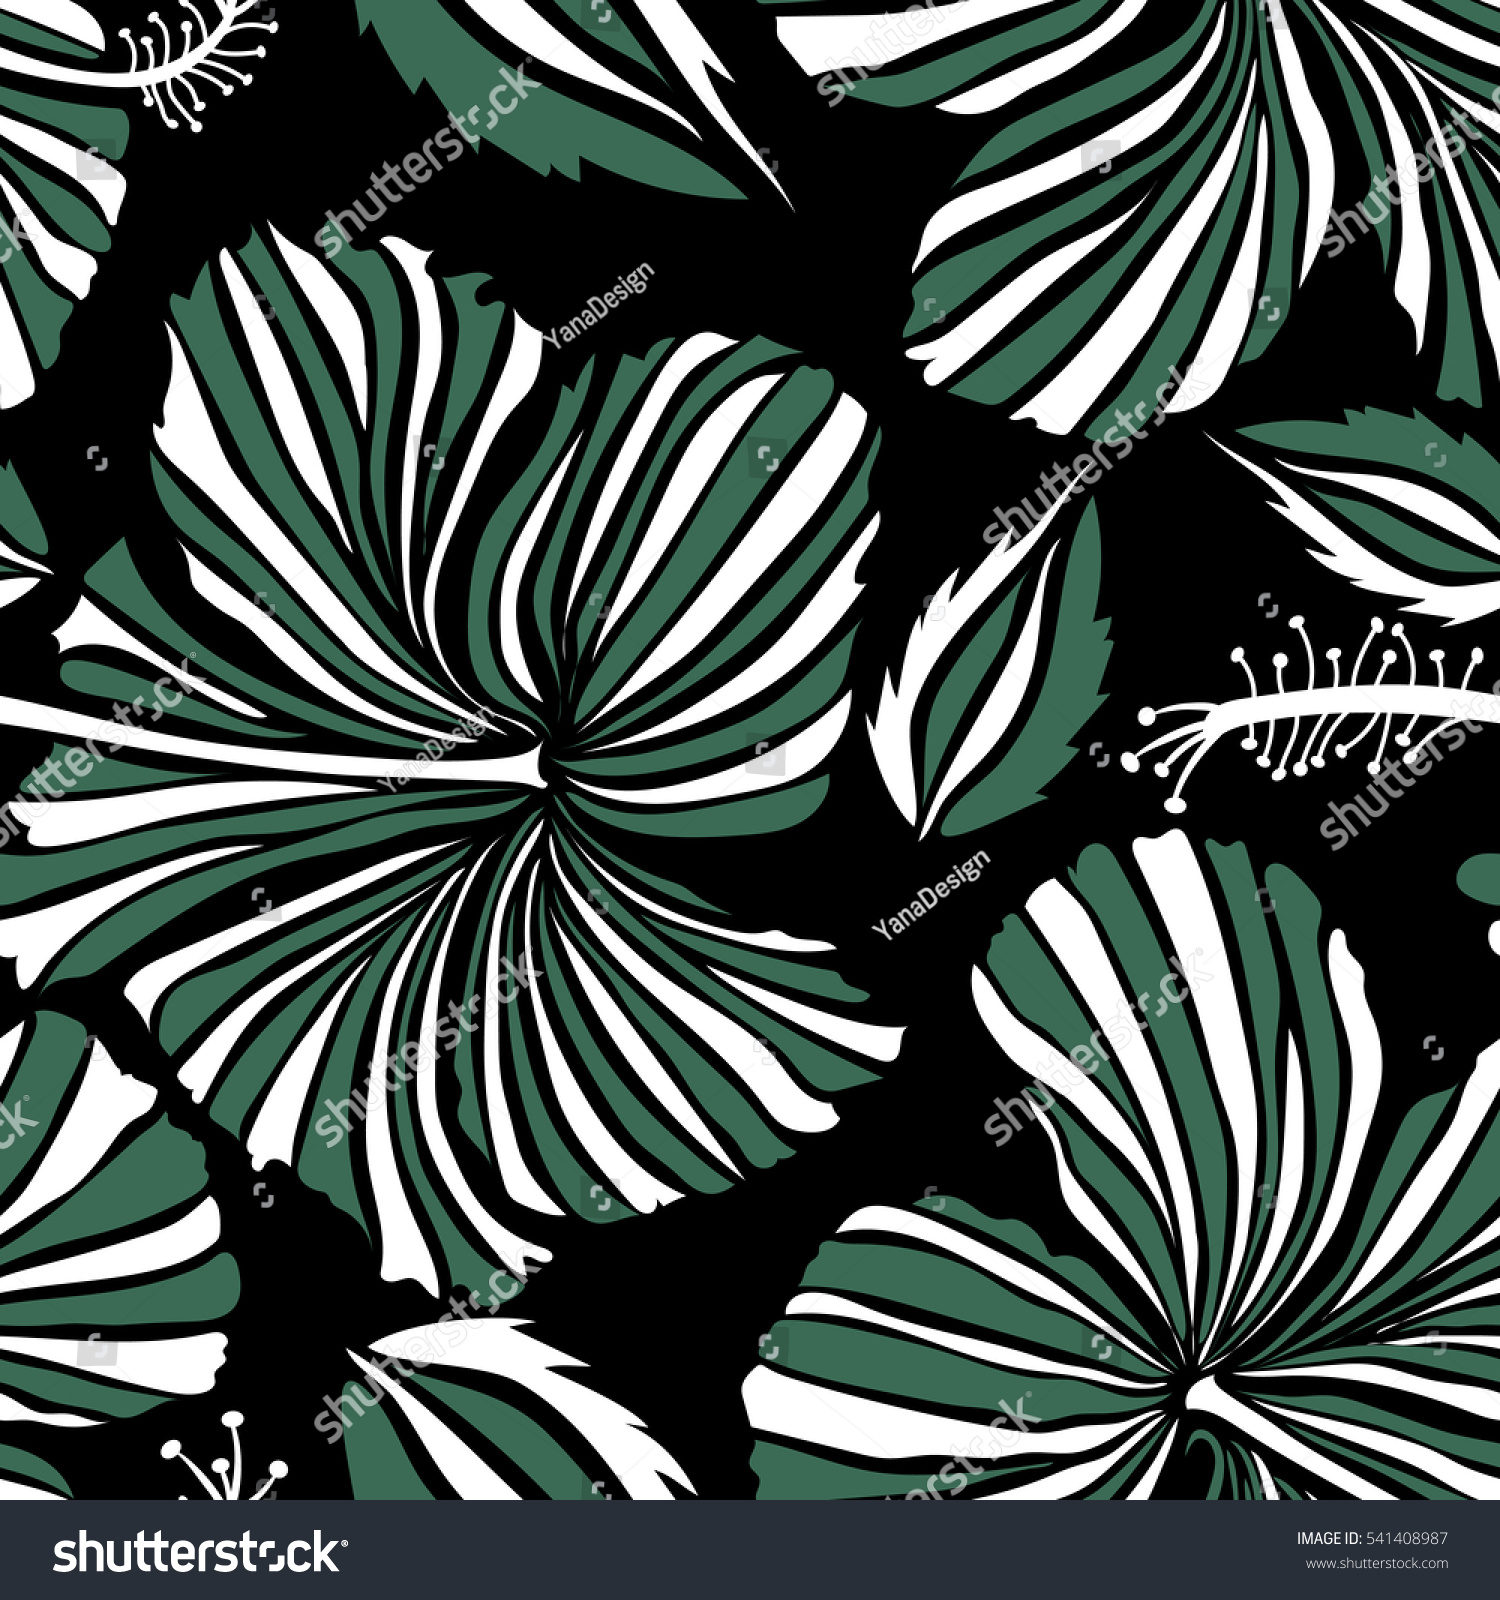 Hibiscus flowers on black background white stock illustration hibiscus flowers on a black background in white and green colors izmirmasajfo